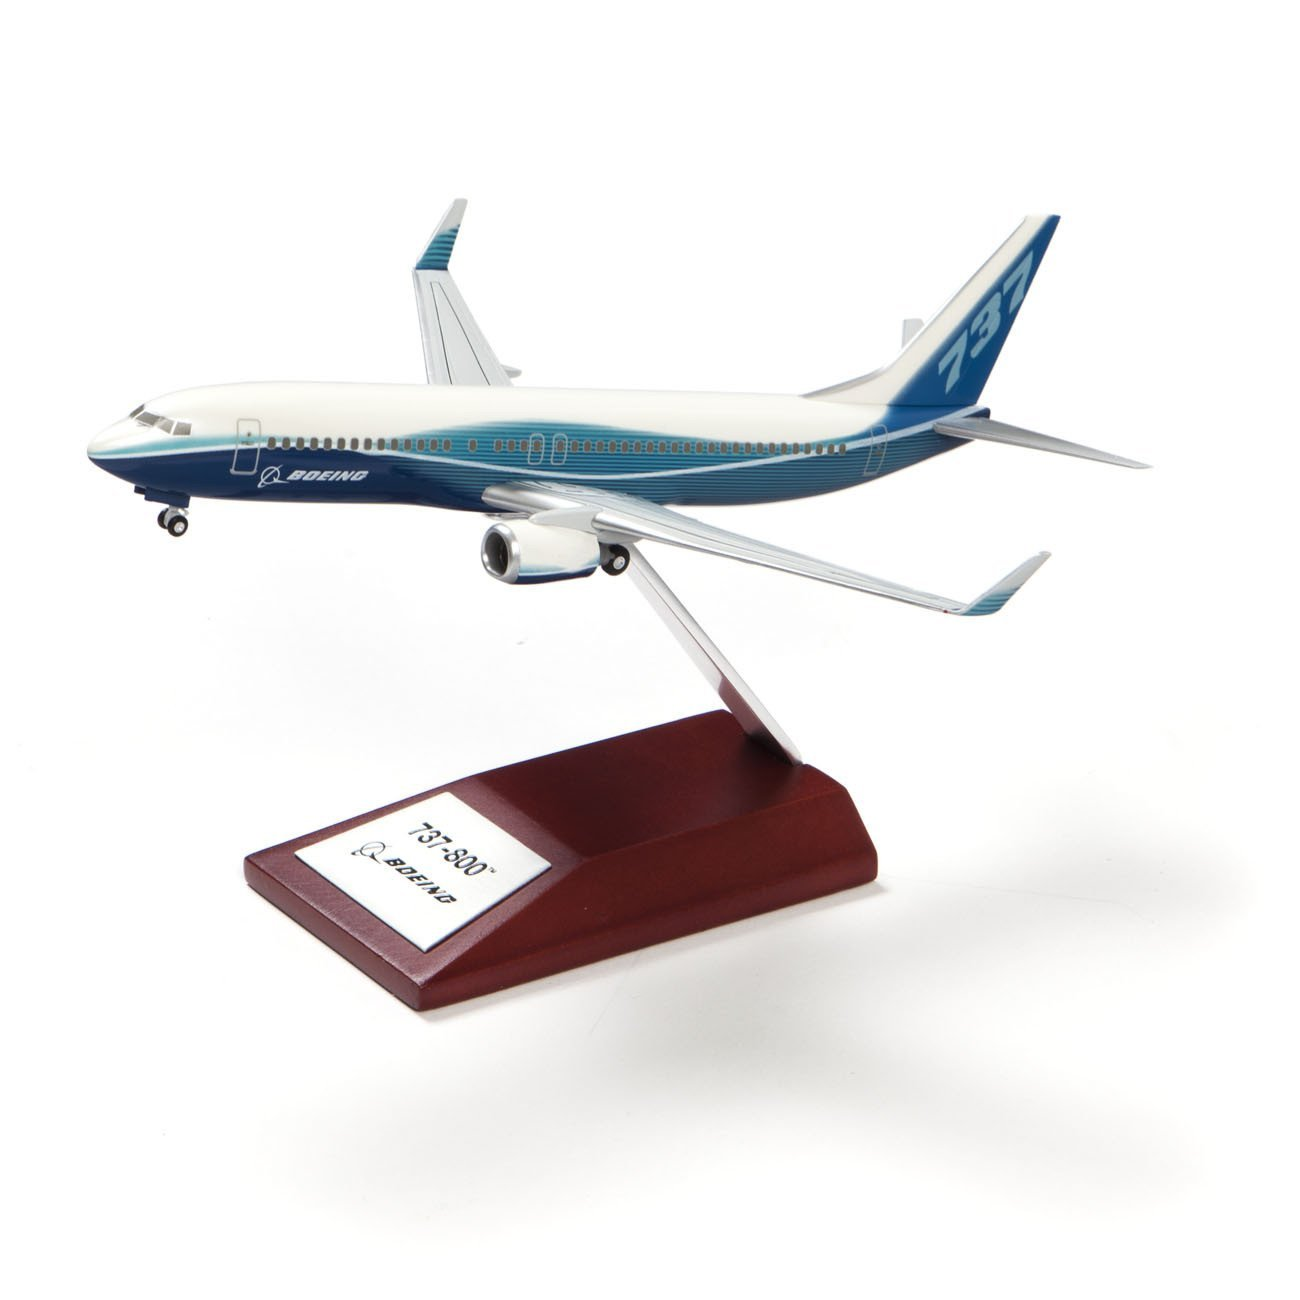 Boeing 737-800 Plastic 1:200 Model